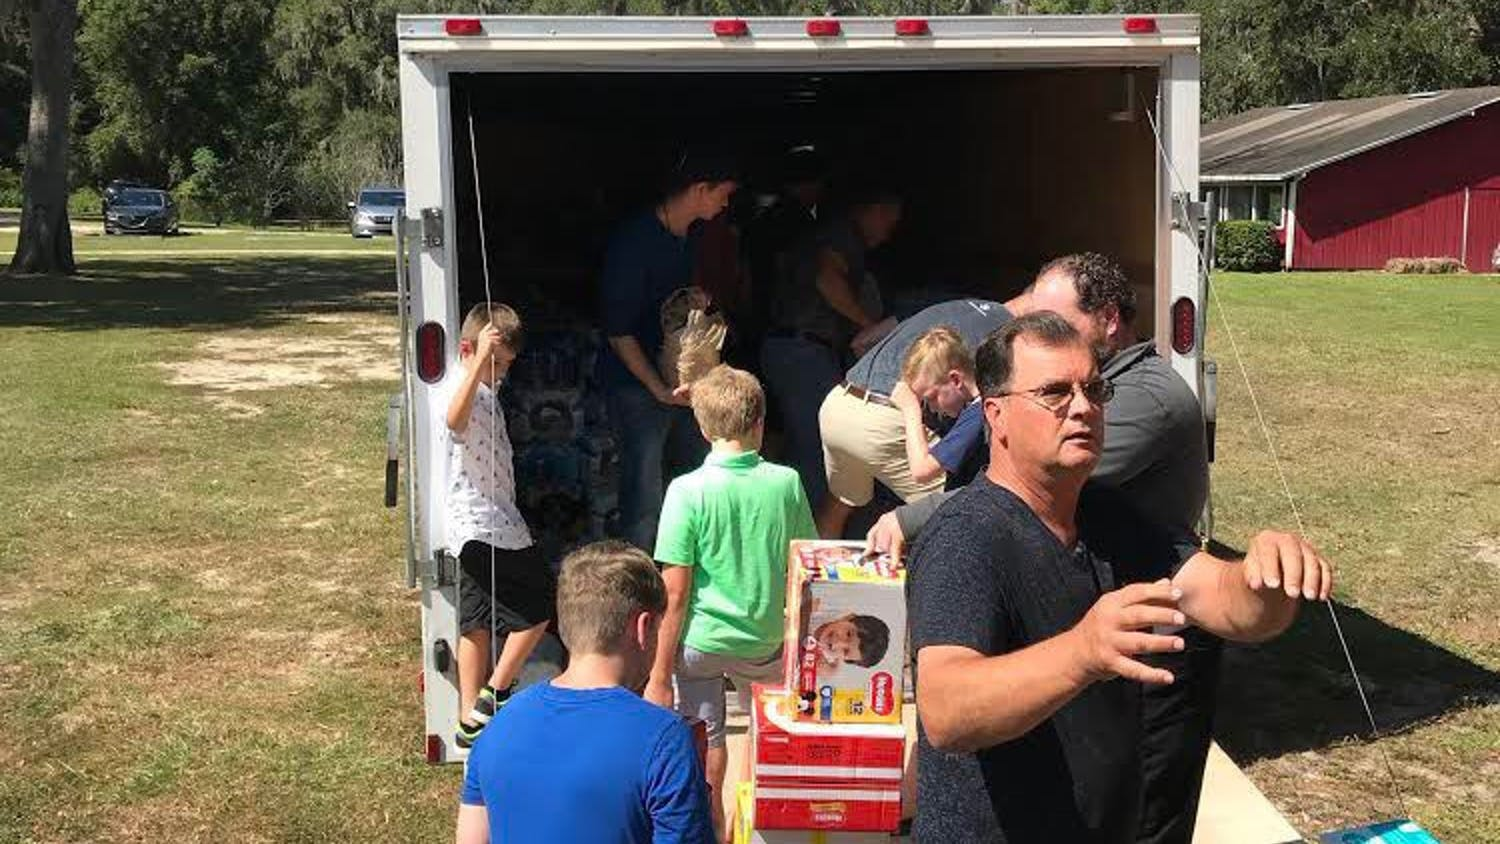 Members of Anthem Church partner with Concept Companies to fill a 24-foot trailer with donations of food, water, fuel and other resources to be delivered in the Panhandle.